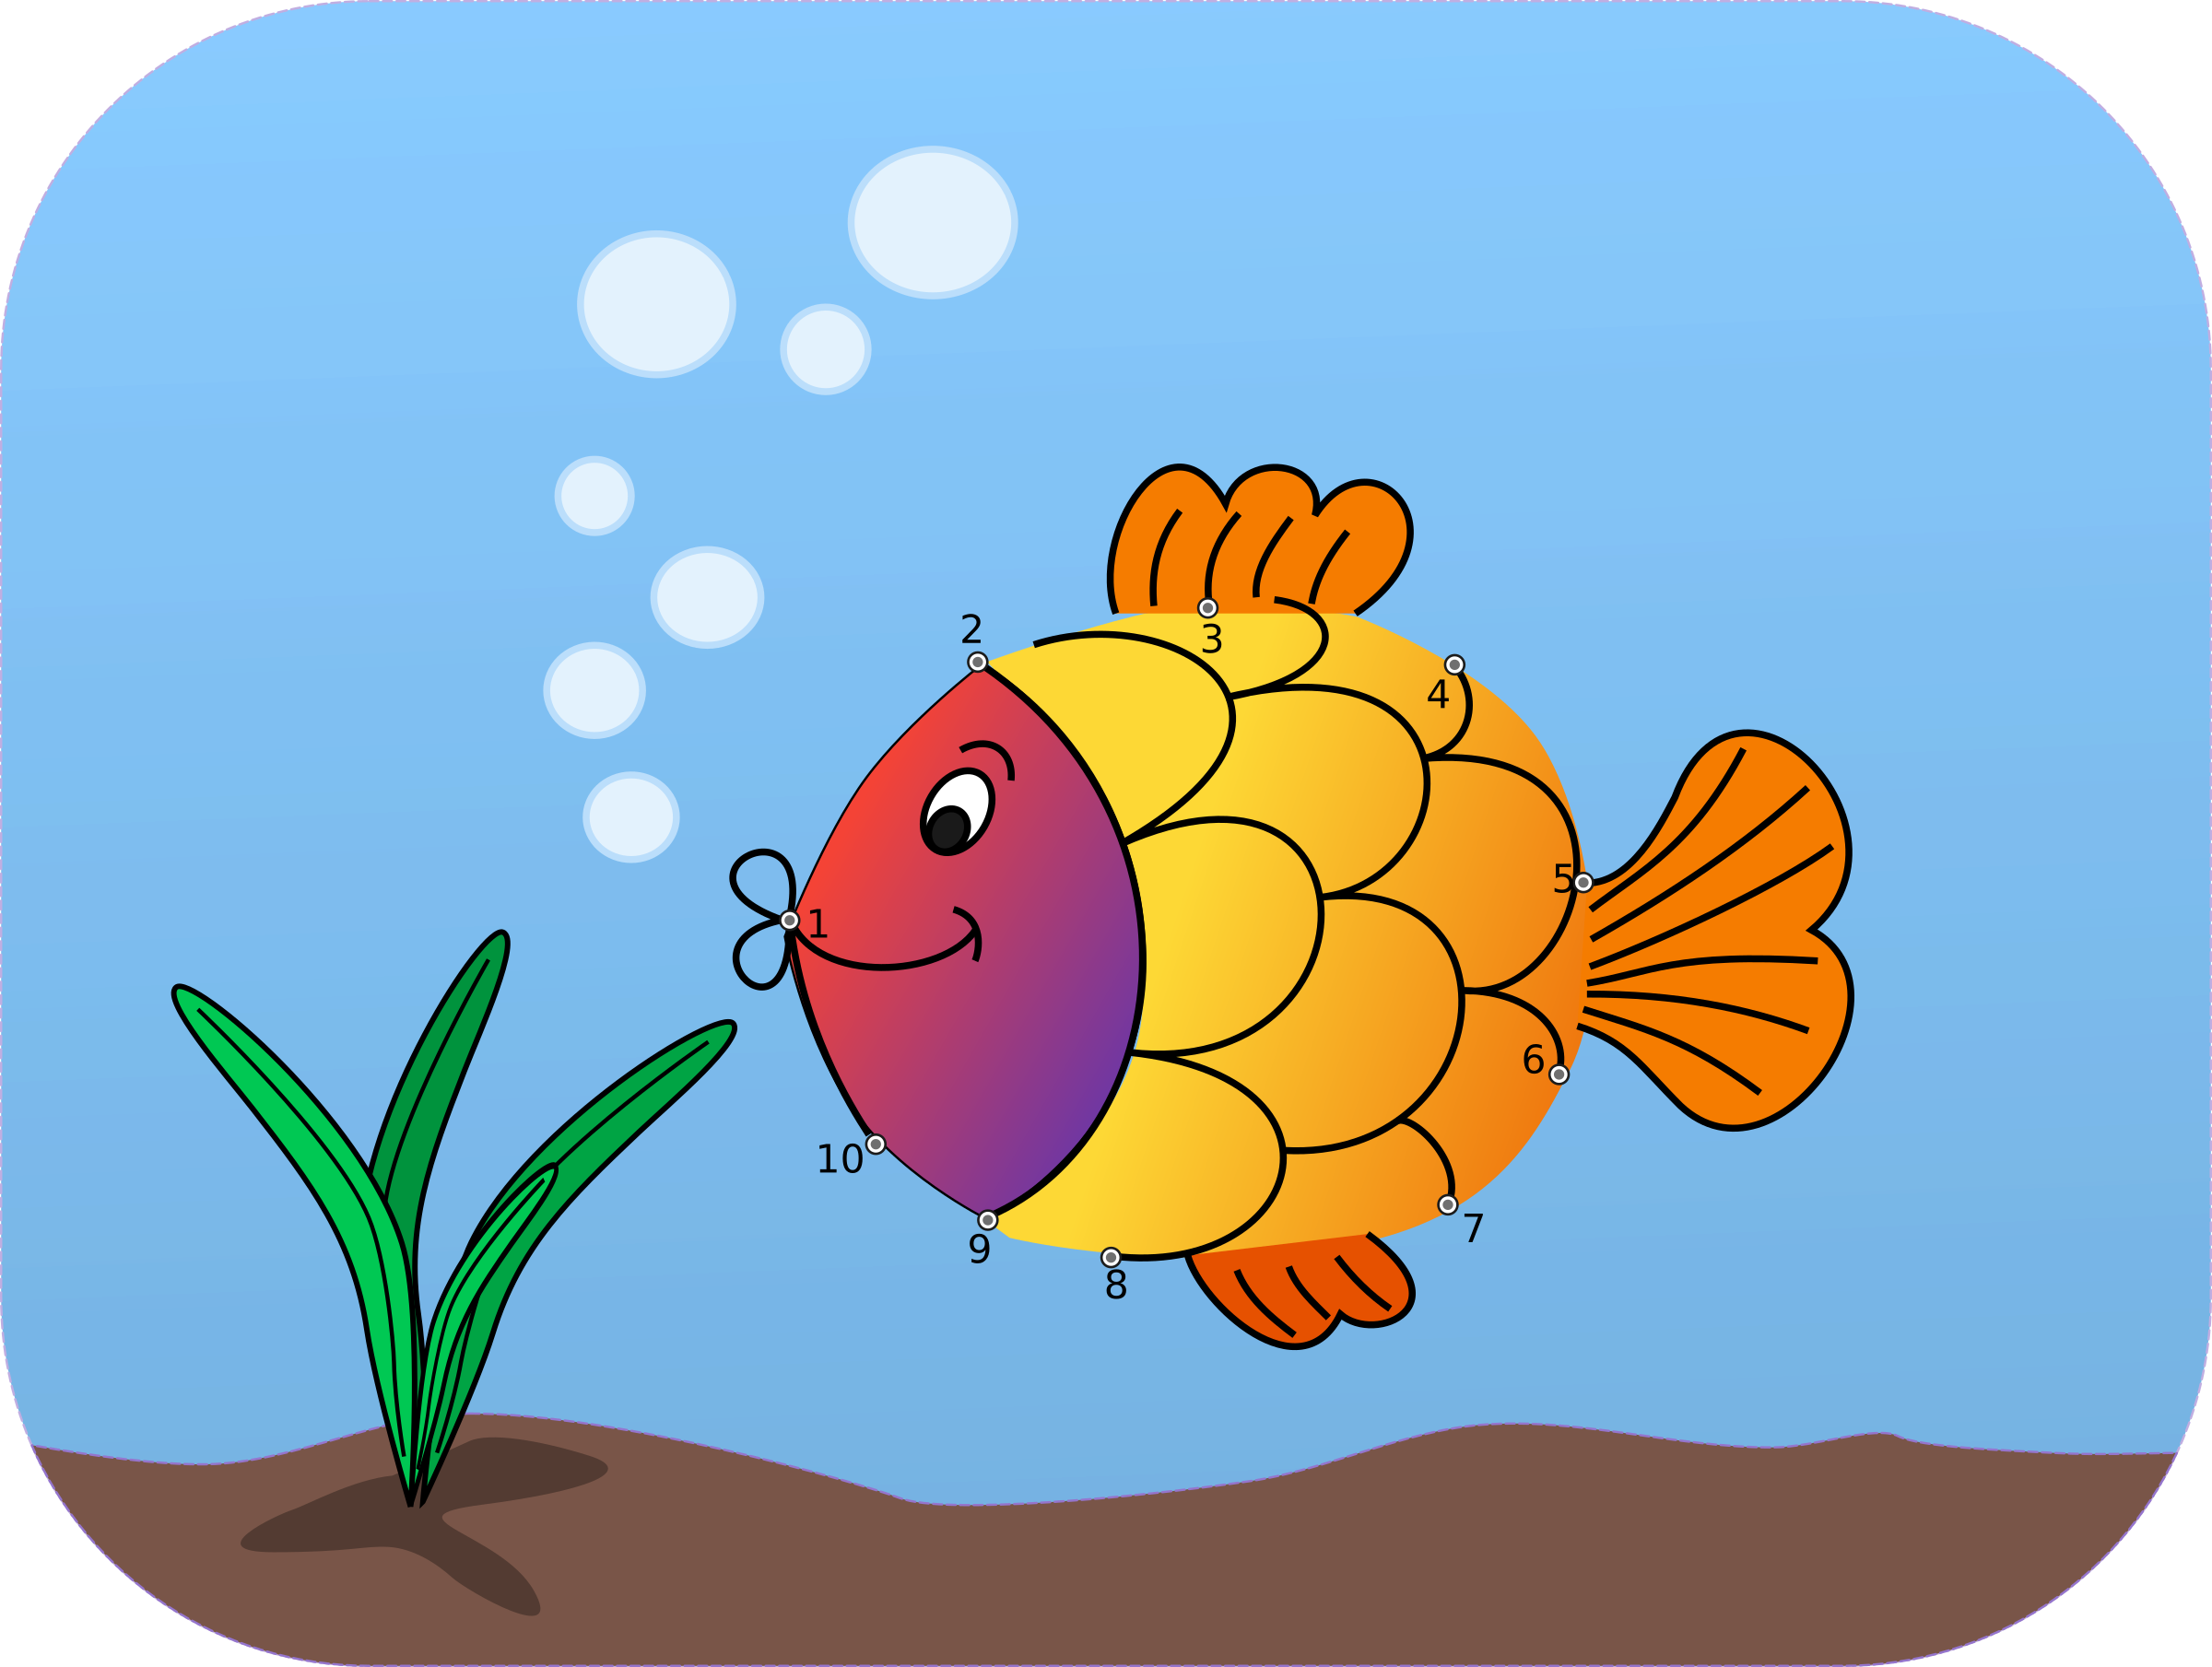 Fish in love clipart. Connect the dots colored